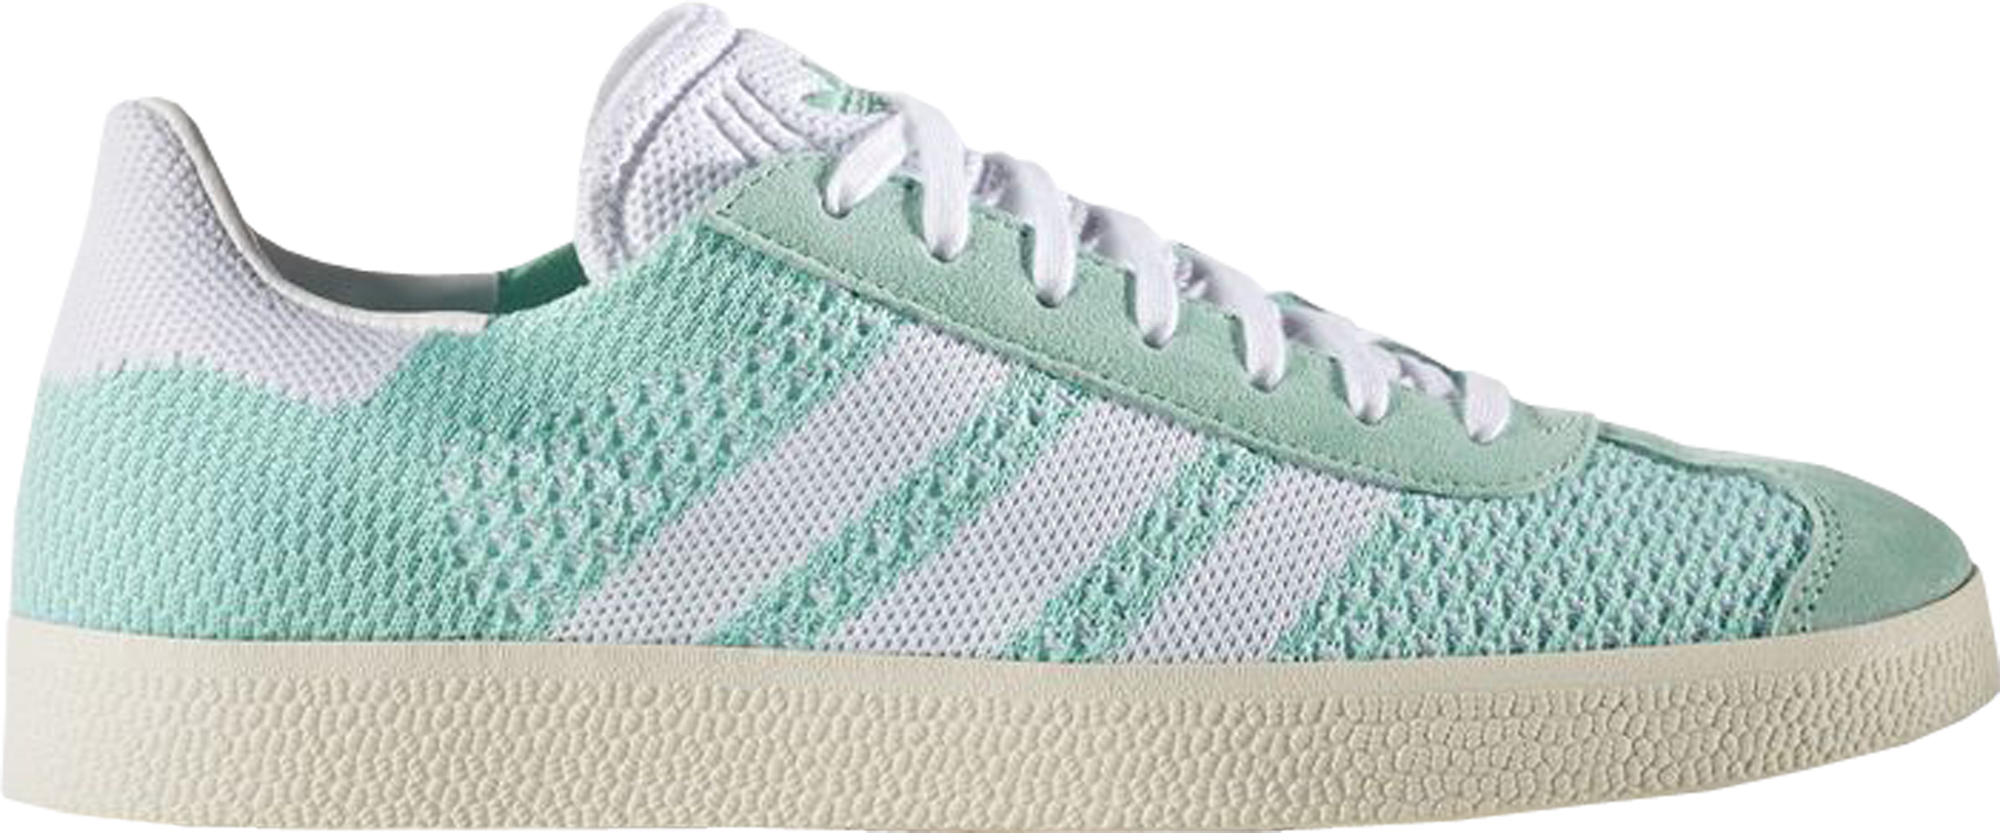 adidas Gazelle Easy Green (W)